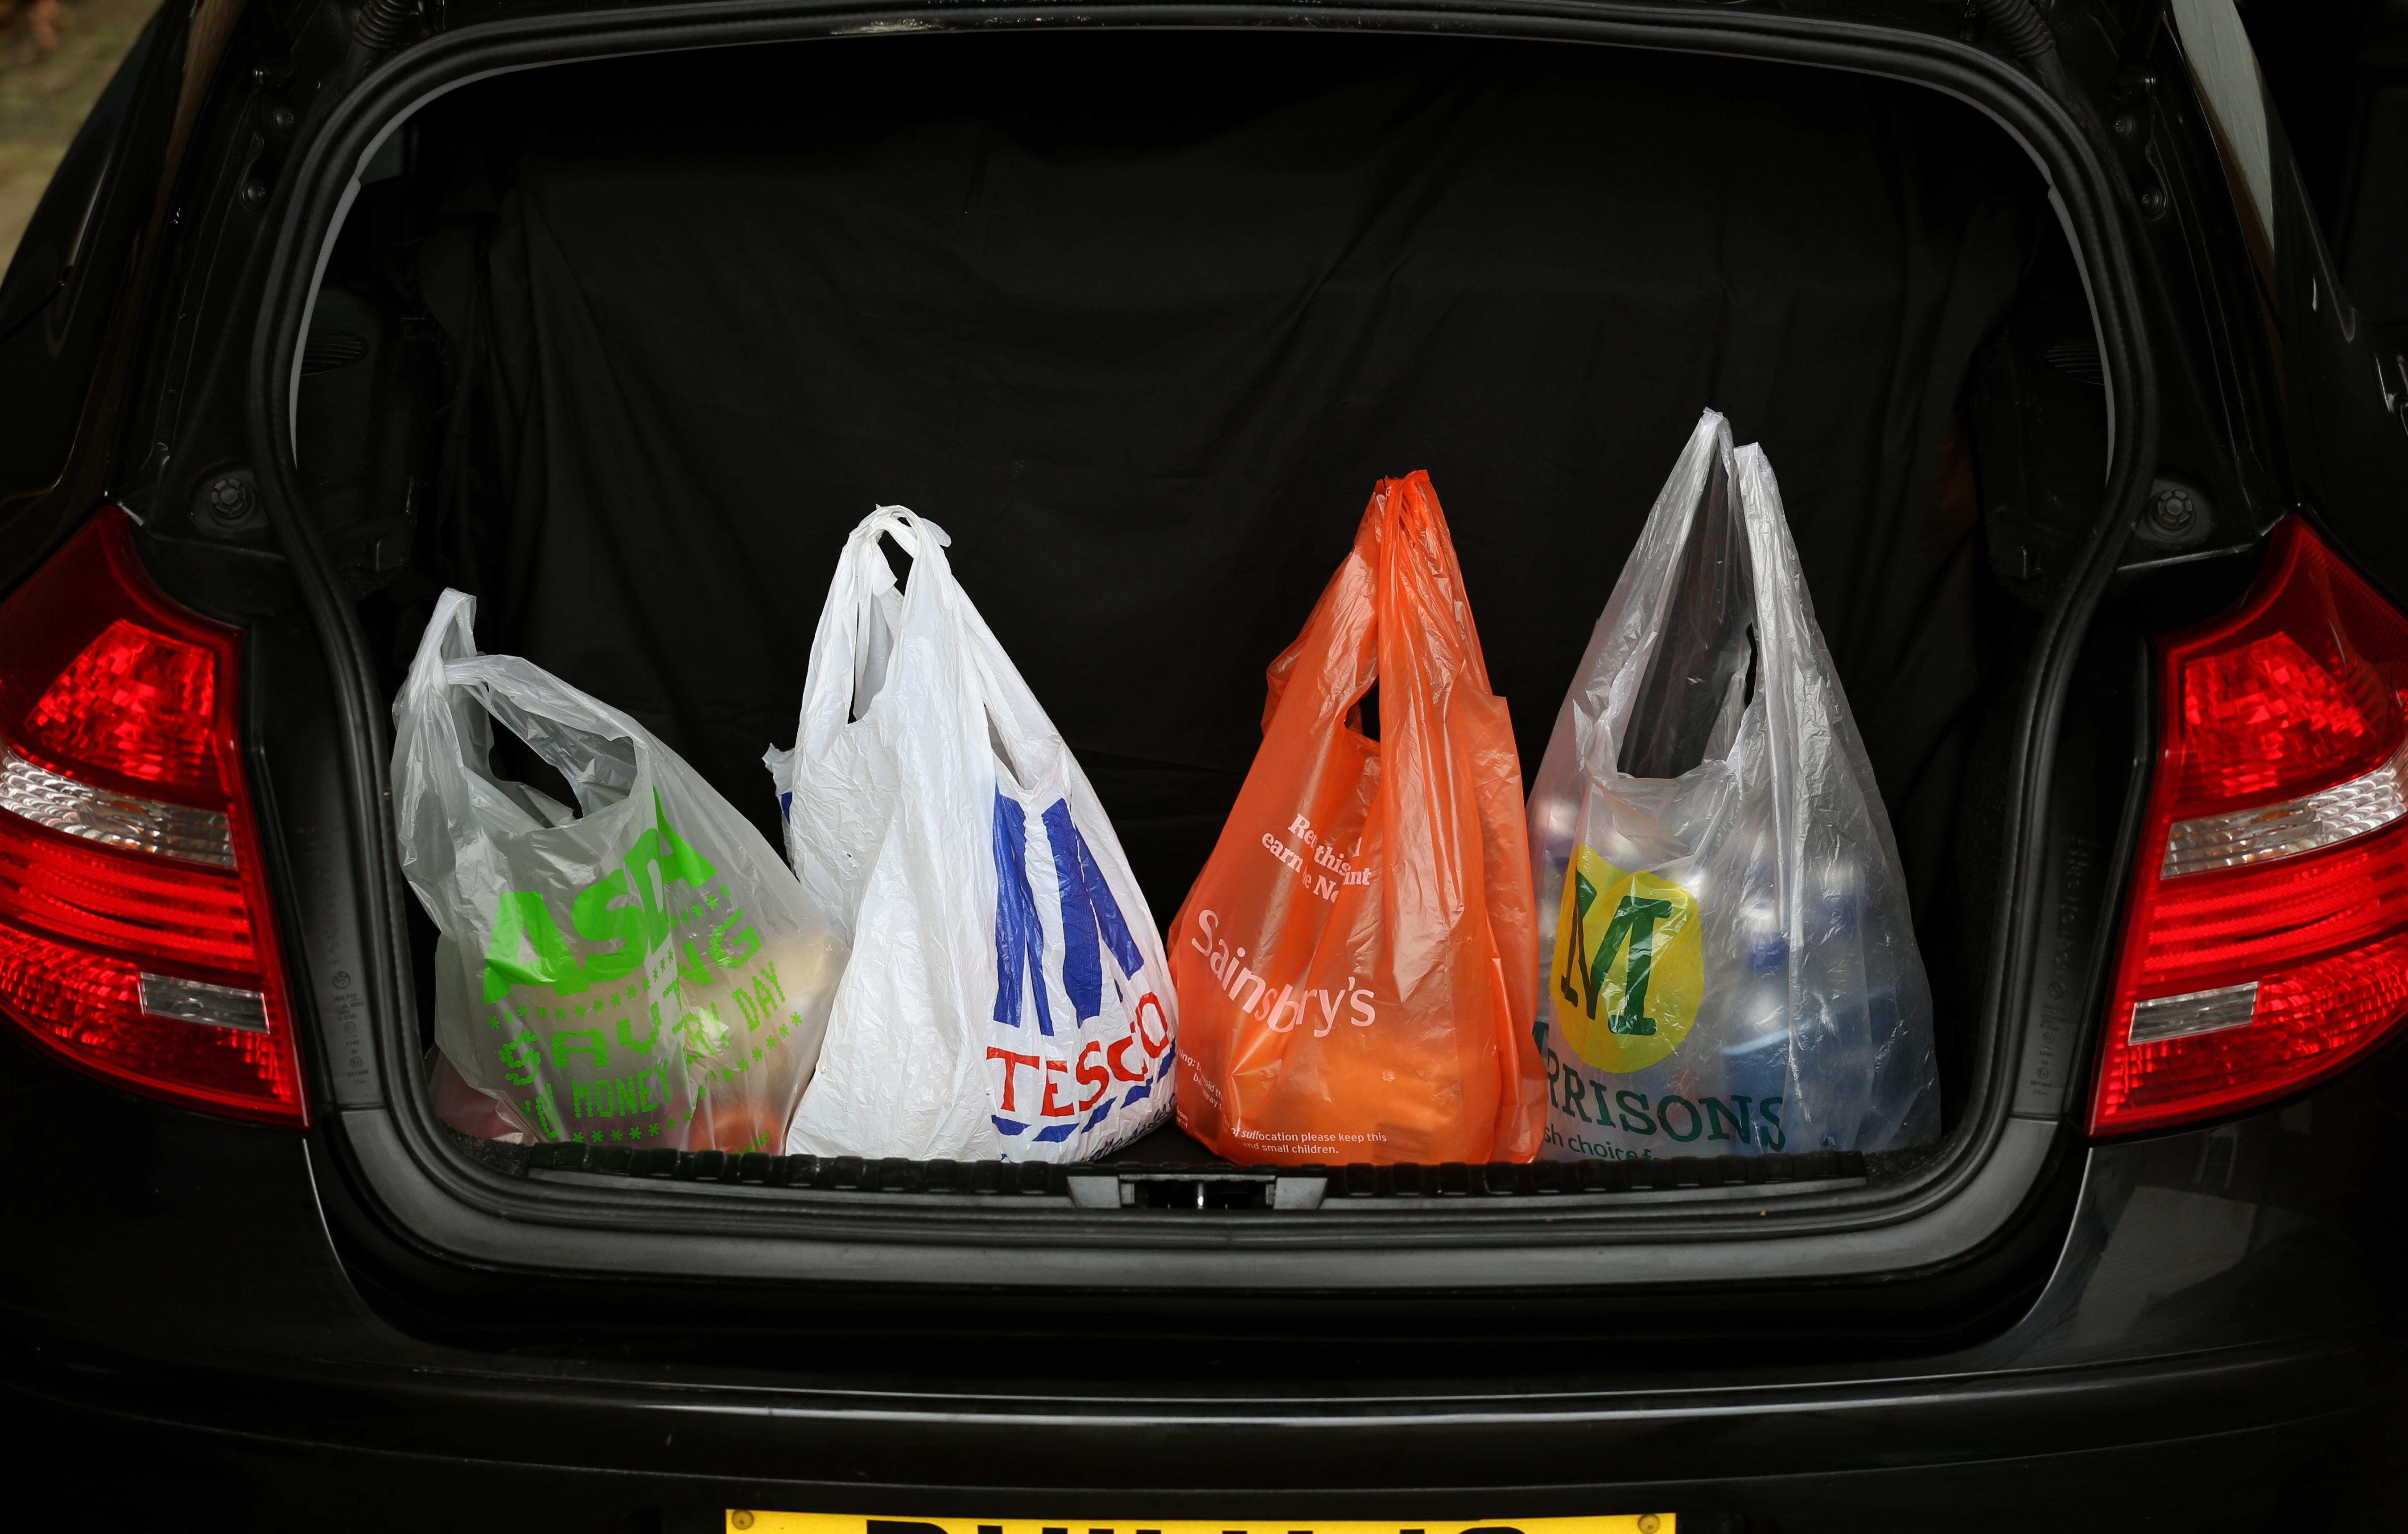 UK's cheapest and most expensive supermarkets